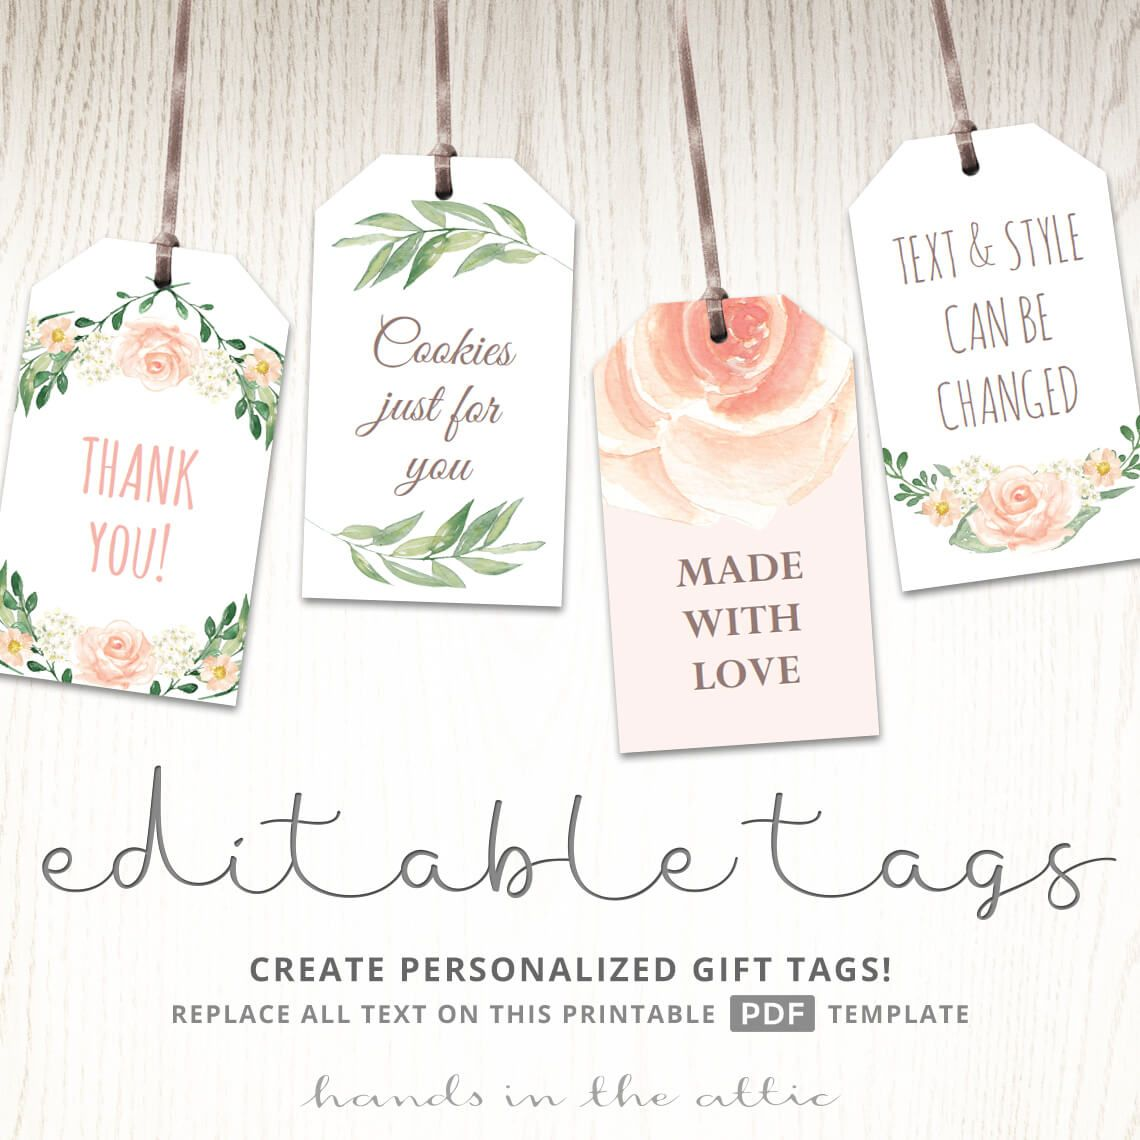 Printable Baby Shower Labels Bridal Shower Favor Tags Hands In The Attic Editable Gift Tags Gift Tags Printable Wedding Favor Gift Tags